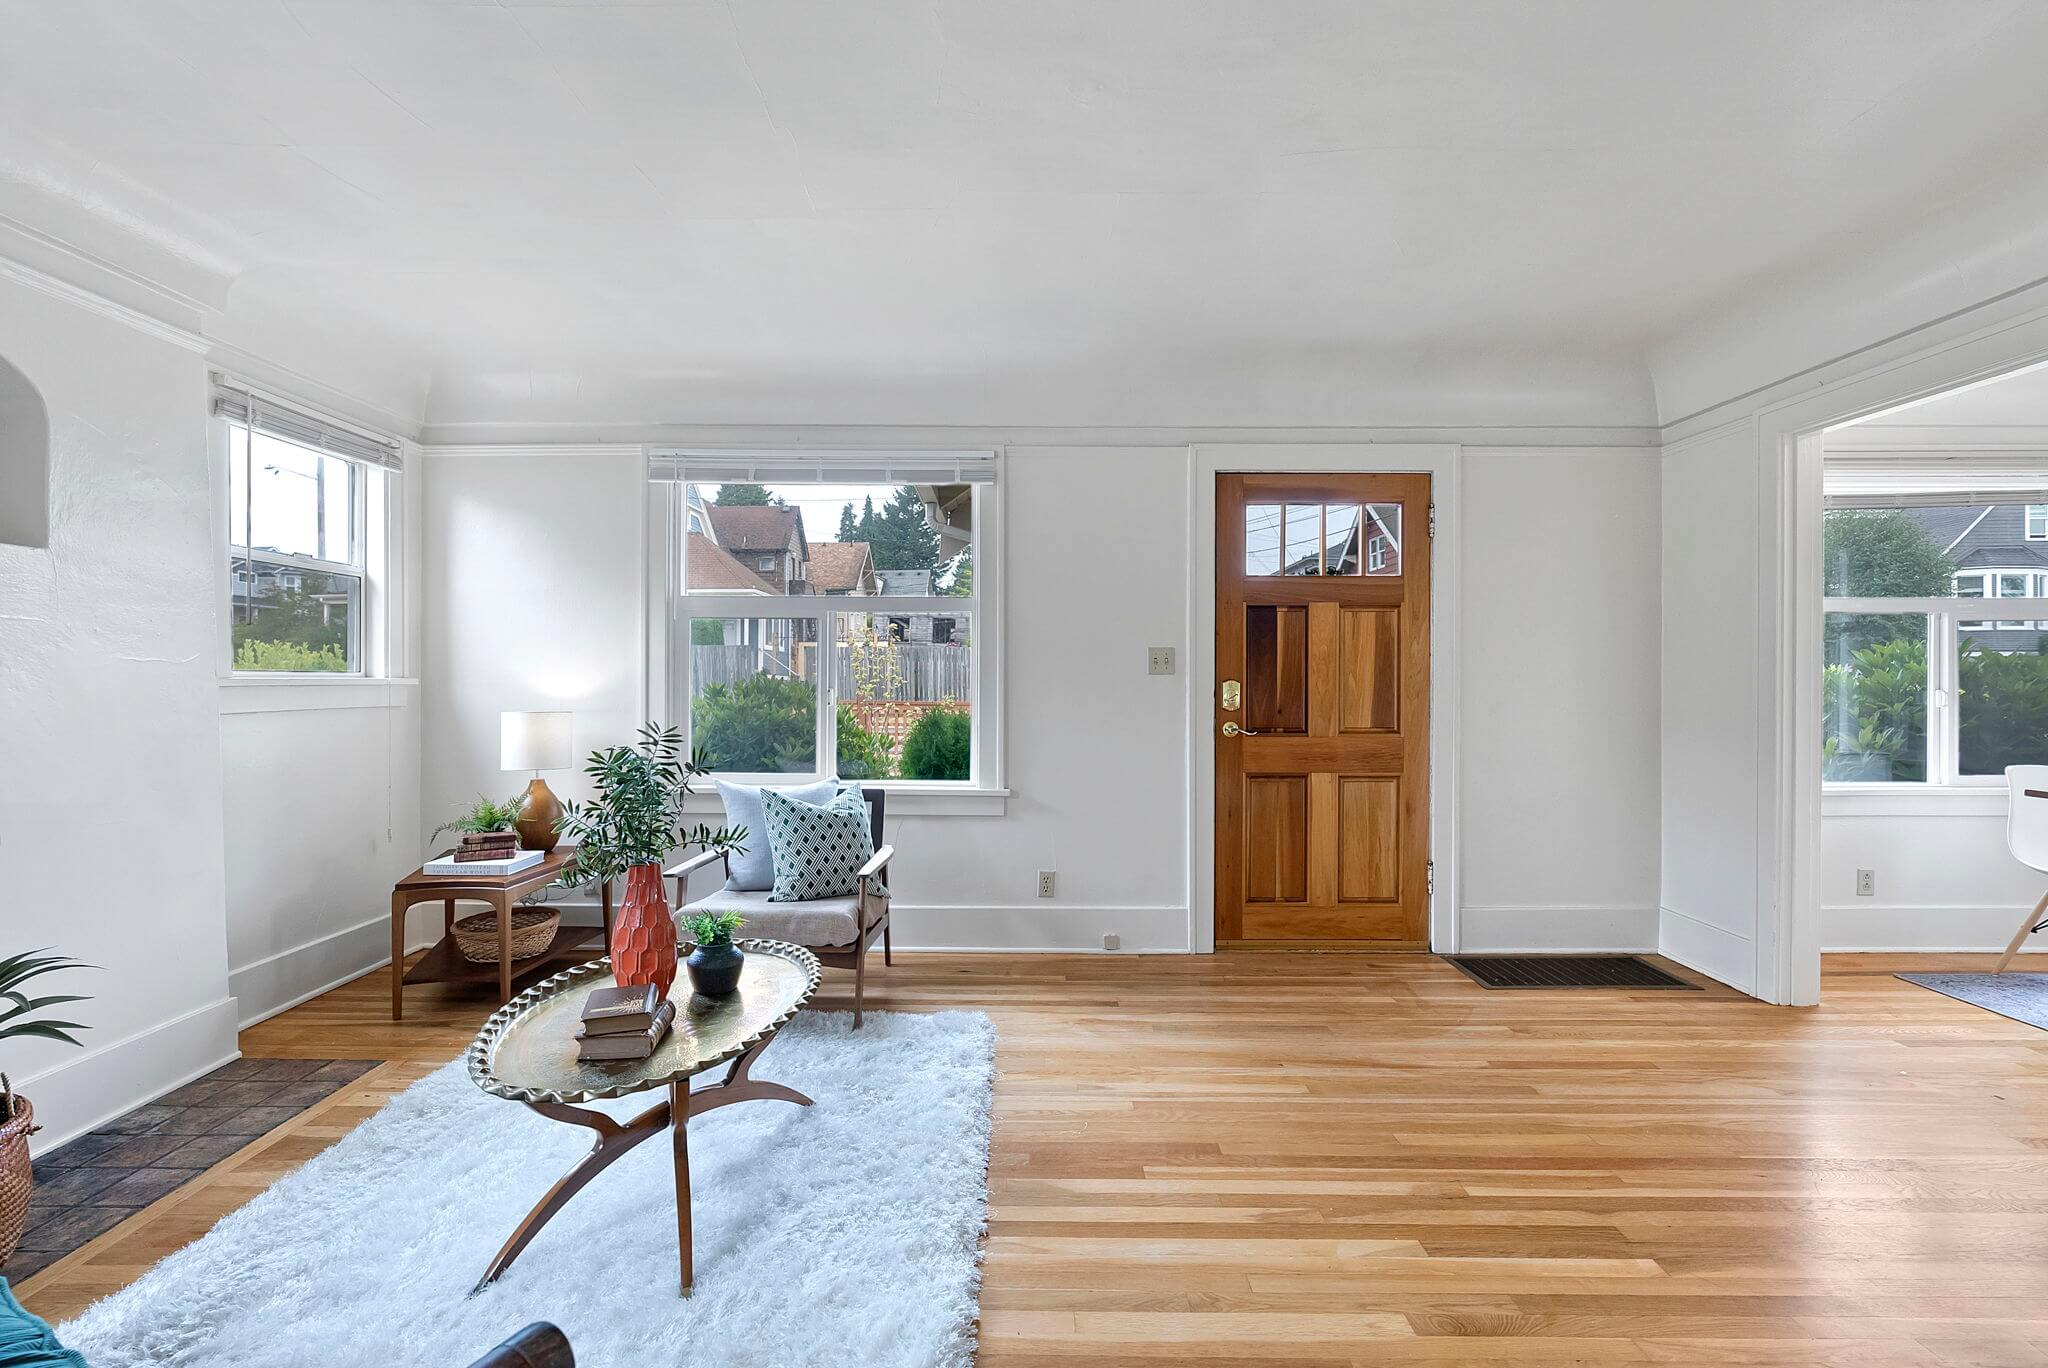 Hardwood floors and coved ceiling